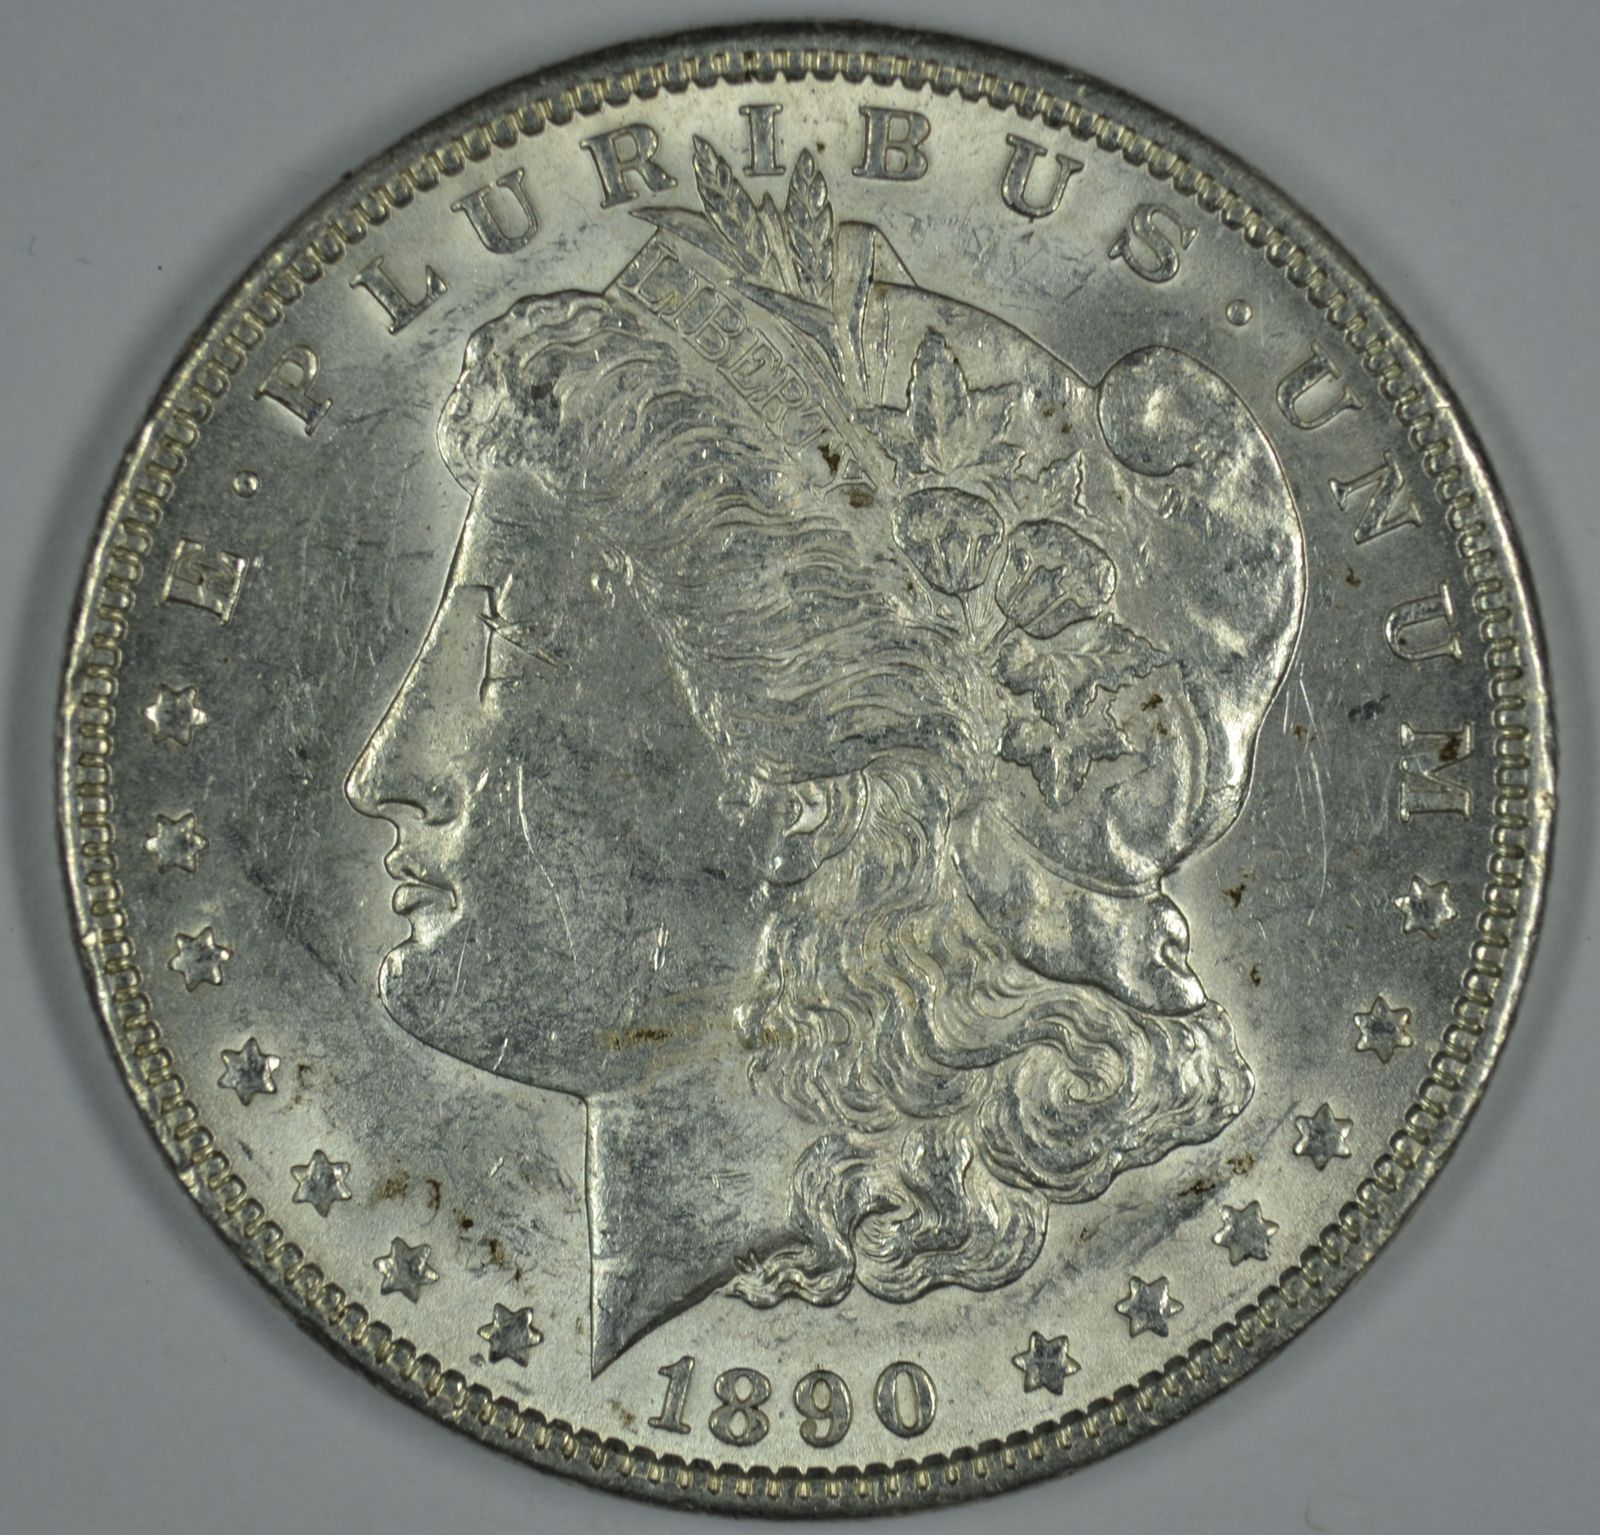 Primary image for 1890 P Morgan circulated silver dollar XF details